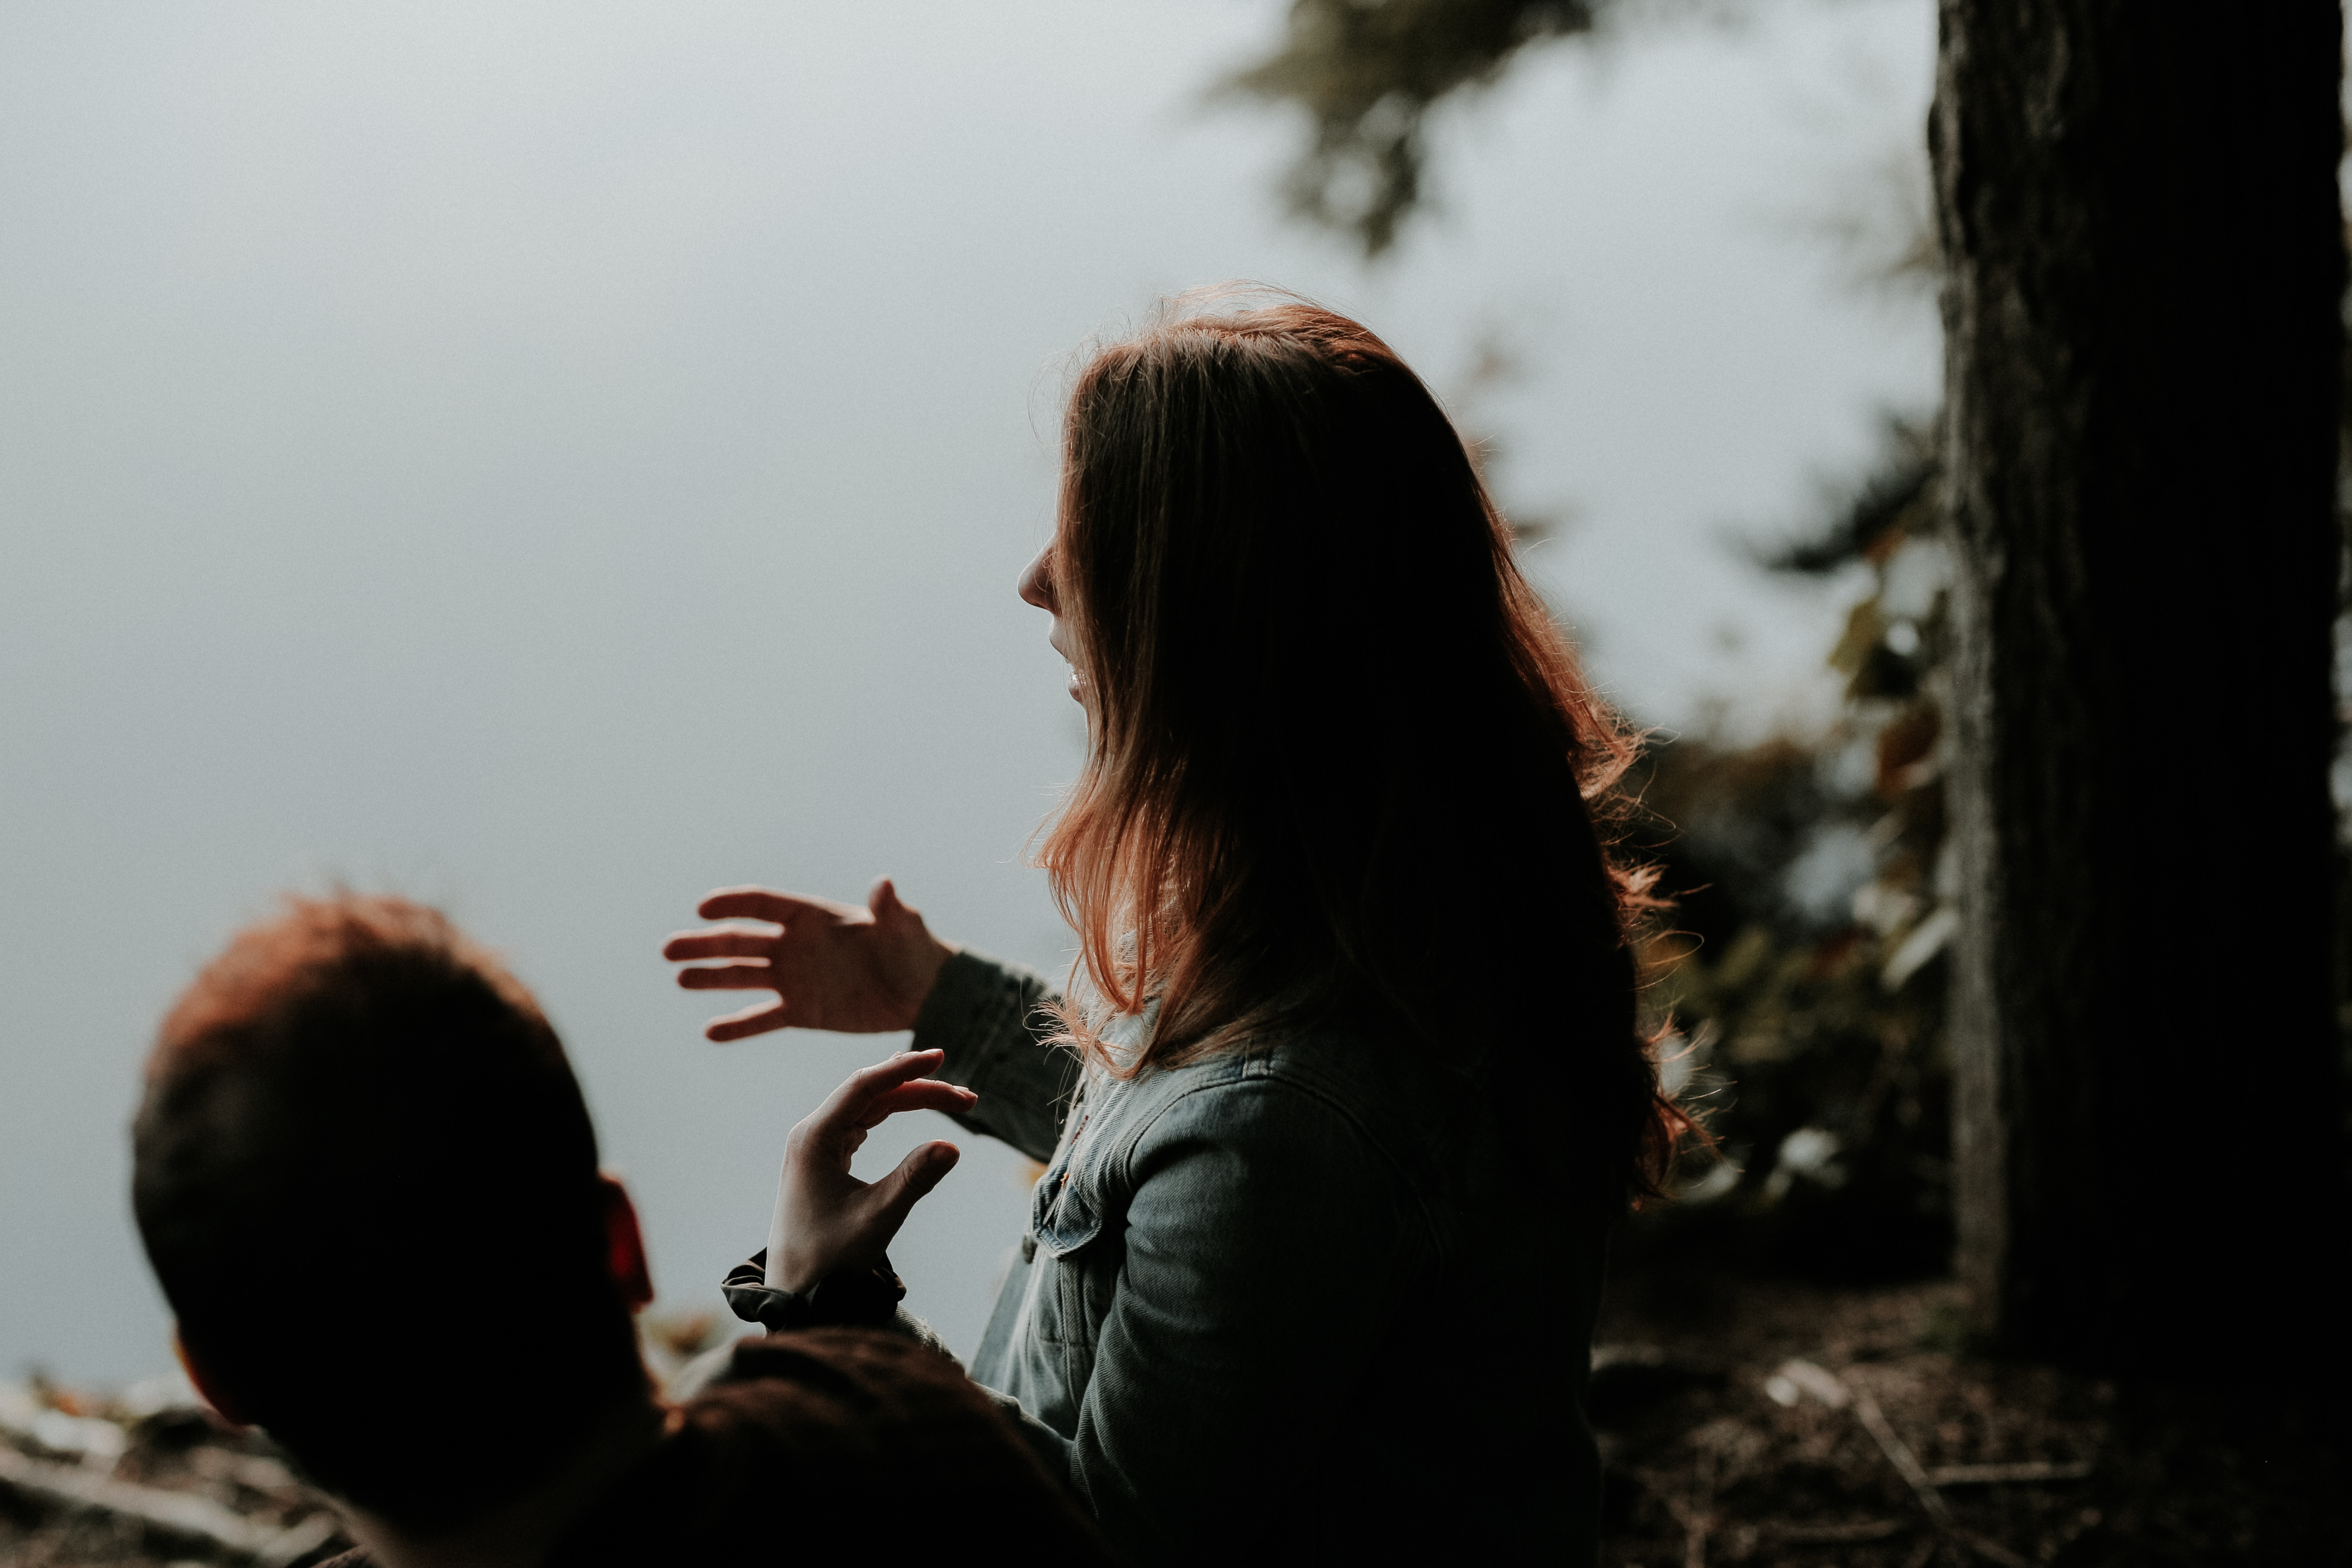 Photograph of a woman sitting next to a man. She is gesturing with her hands as she speaks.